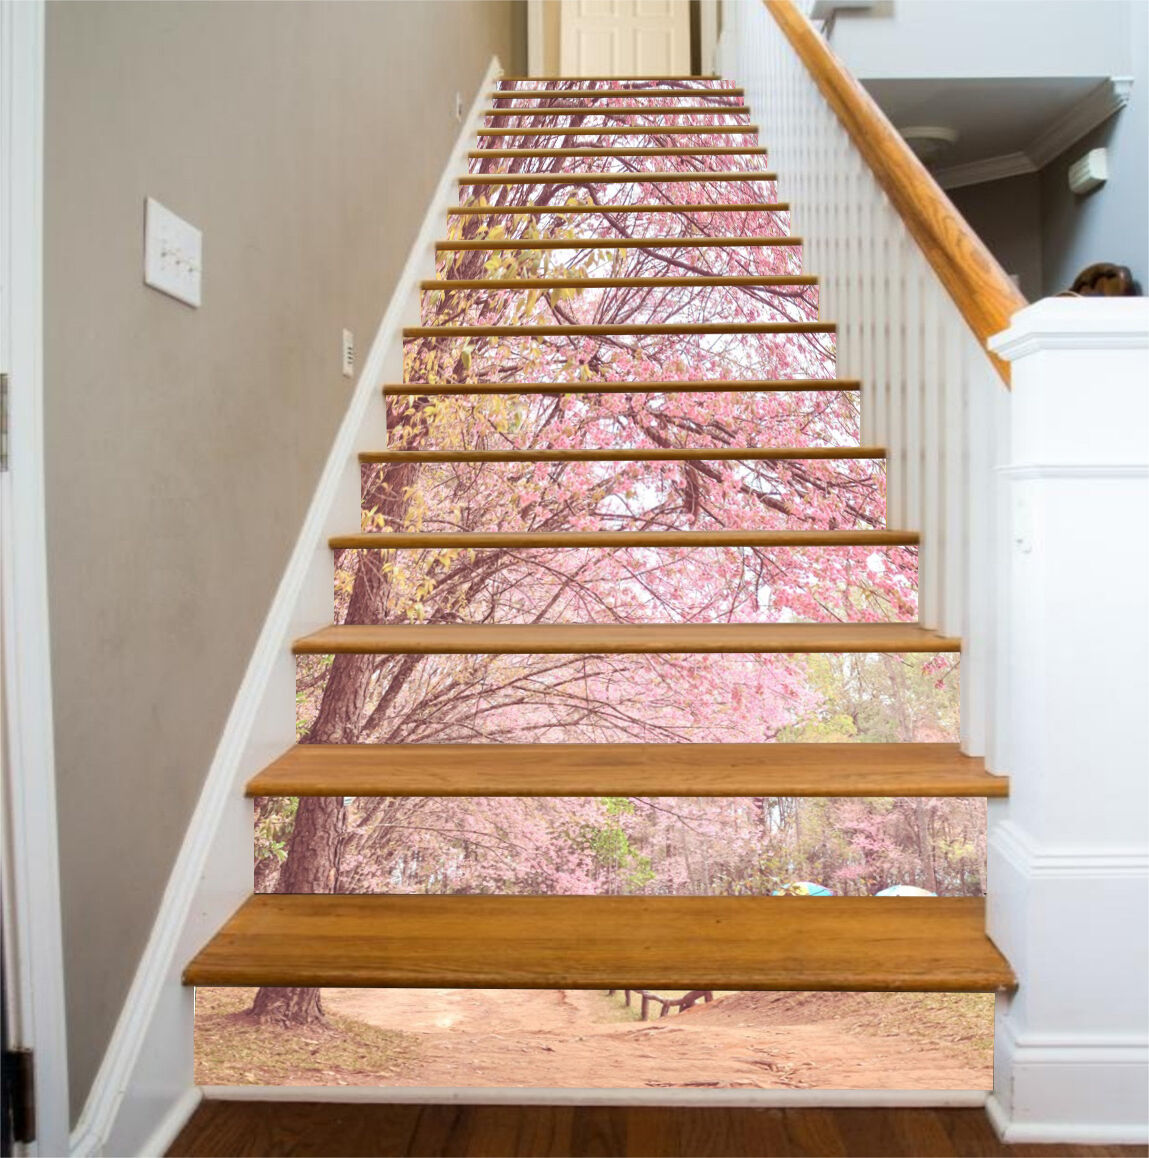 3D Lawn Flower Tree Stair Risers Decoration Photo Mural Vinyl Decal Wallpaper CA